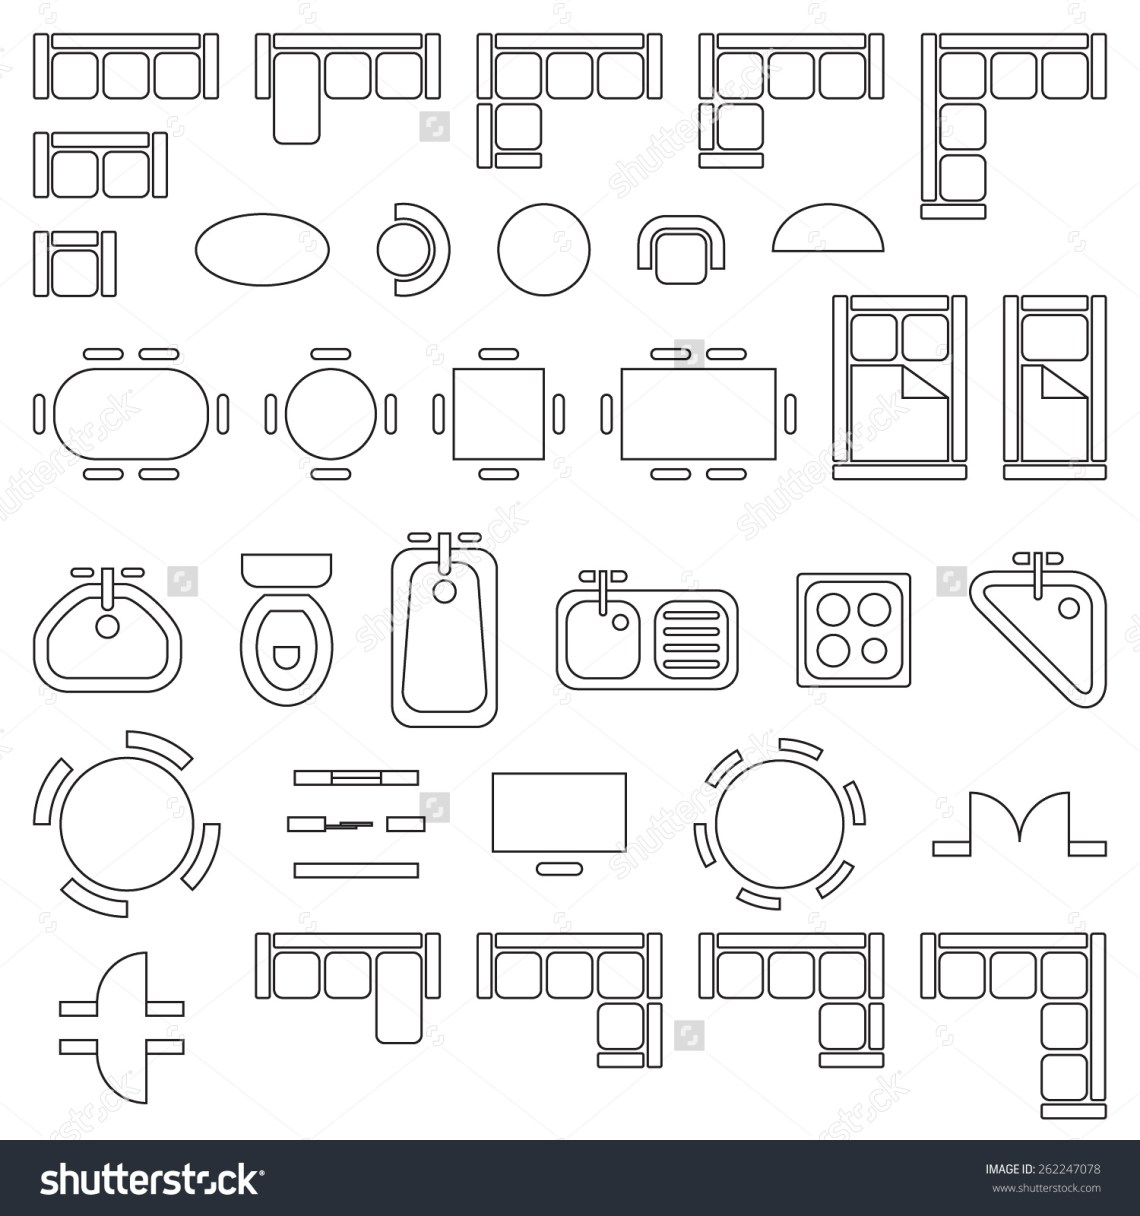 Free Architecture Symbols Cliparts Download Free Architecture Symbols Cliparts Png Images Free Cliparts On Clipart Library